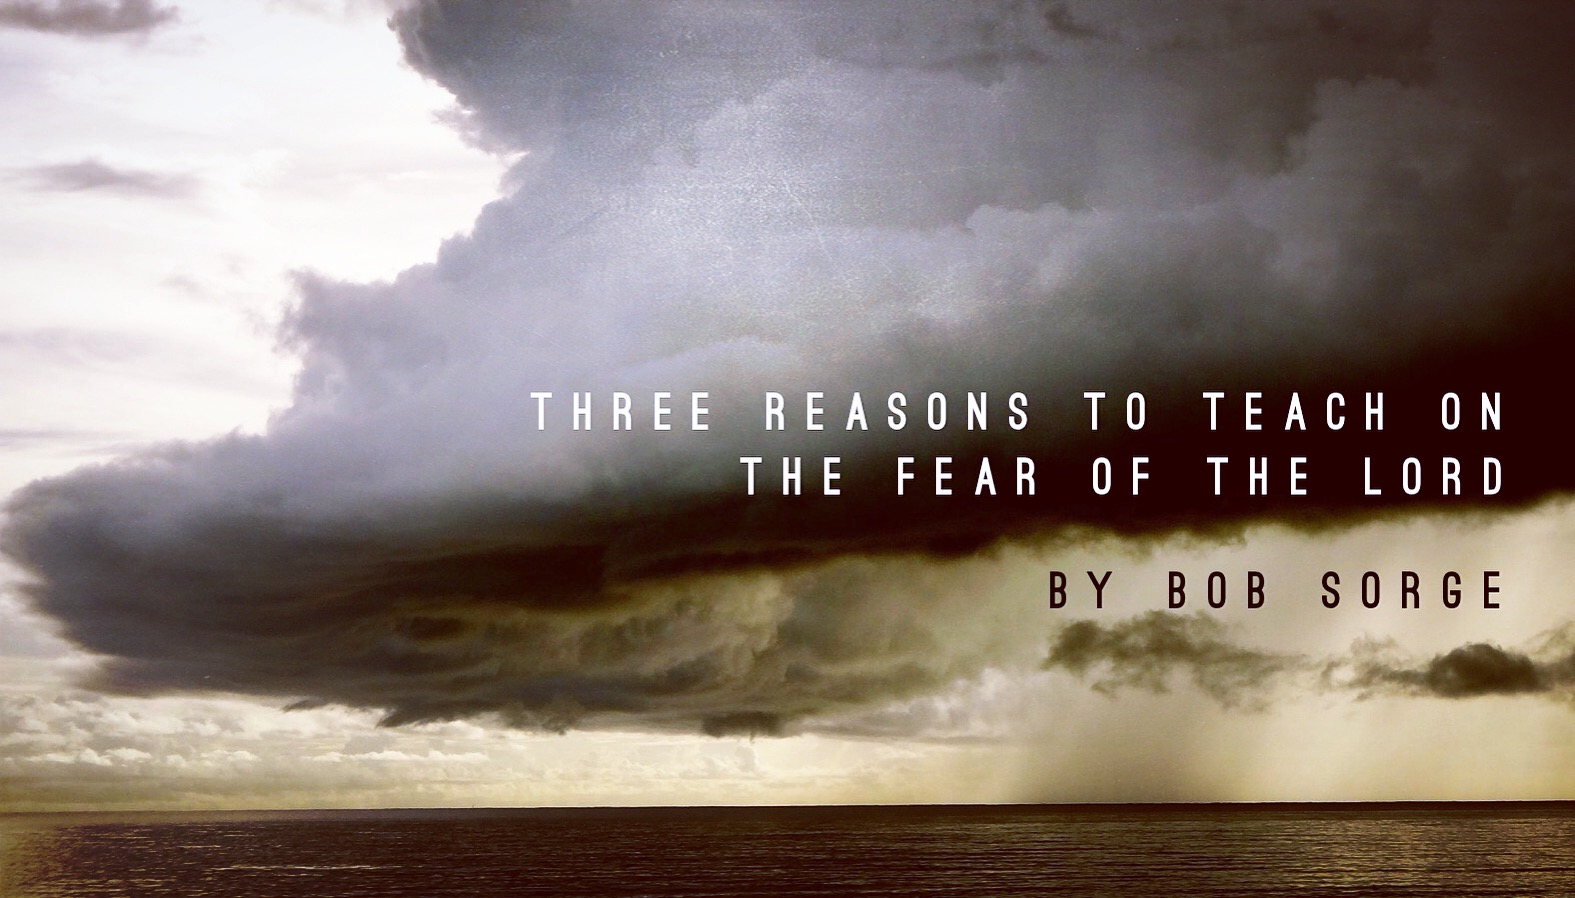 THREE REASONS TO TEACH ON THE FEAR OF THE LORD